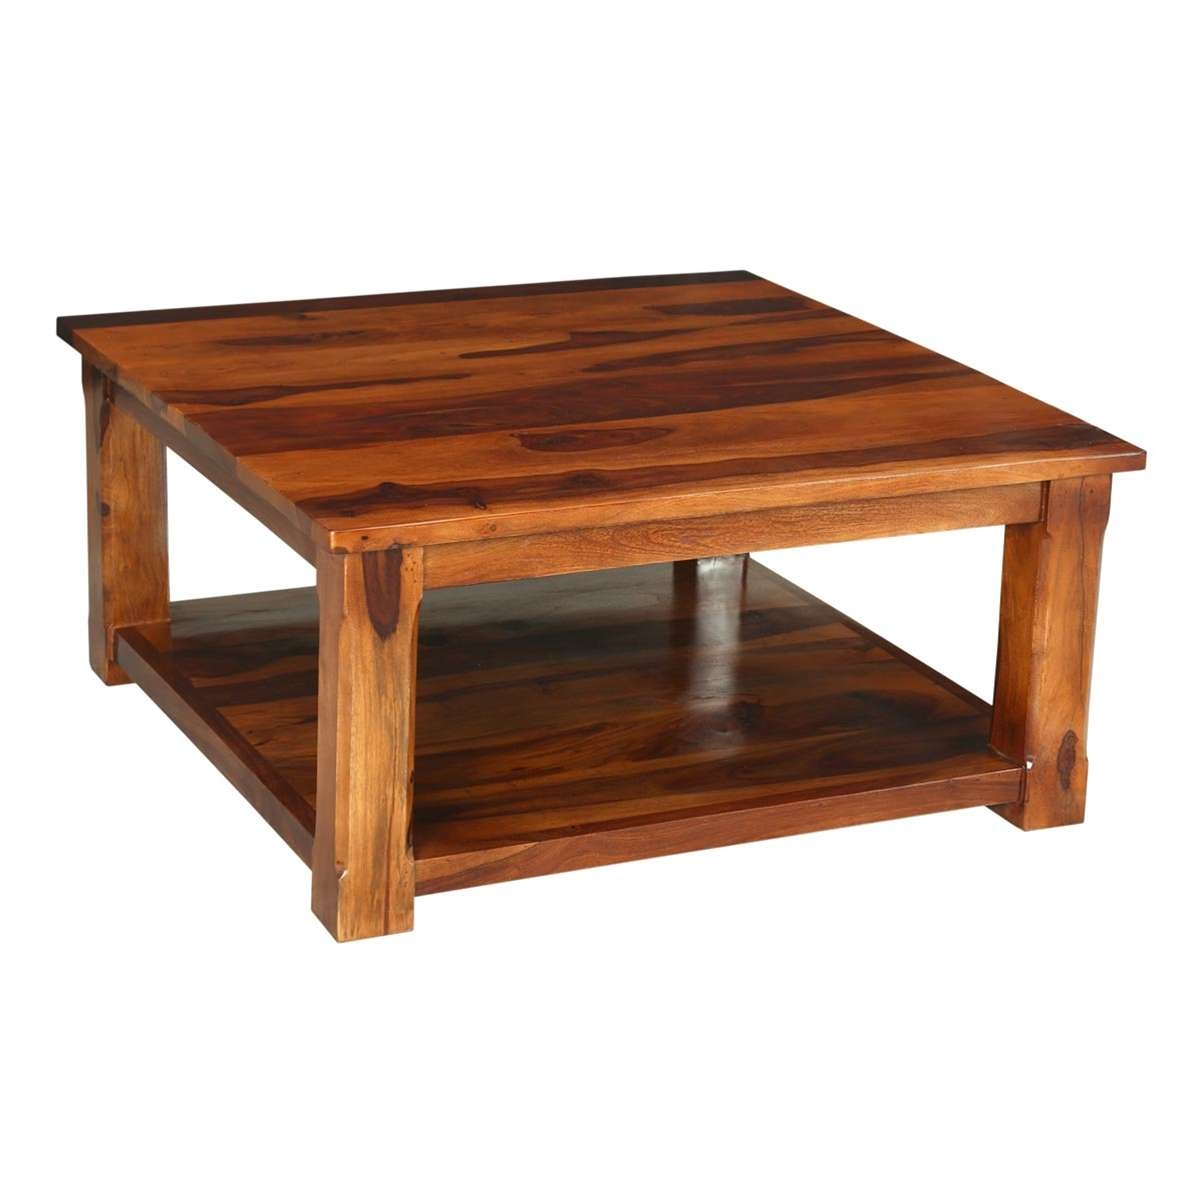 Santa Fe Easy Solid Wood Single Shelf Tv Cabinet Coffee Table For Widely Used Rustic